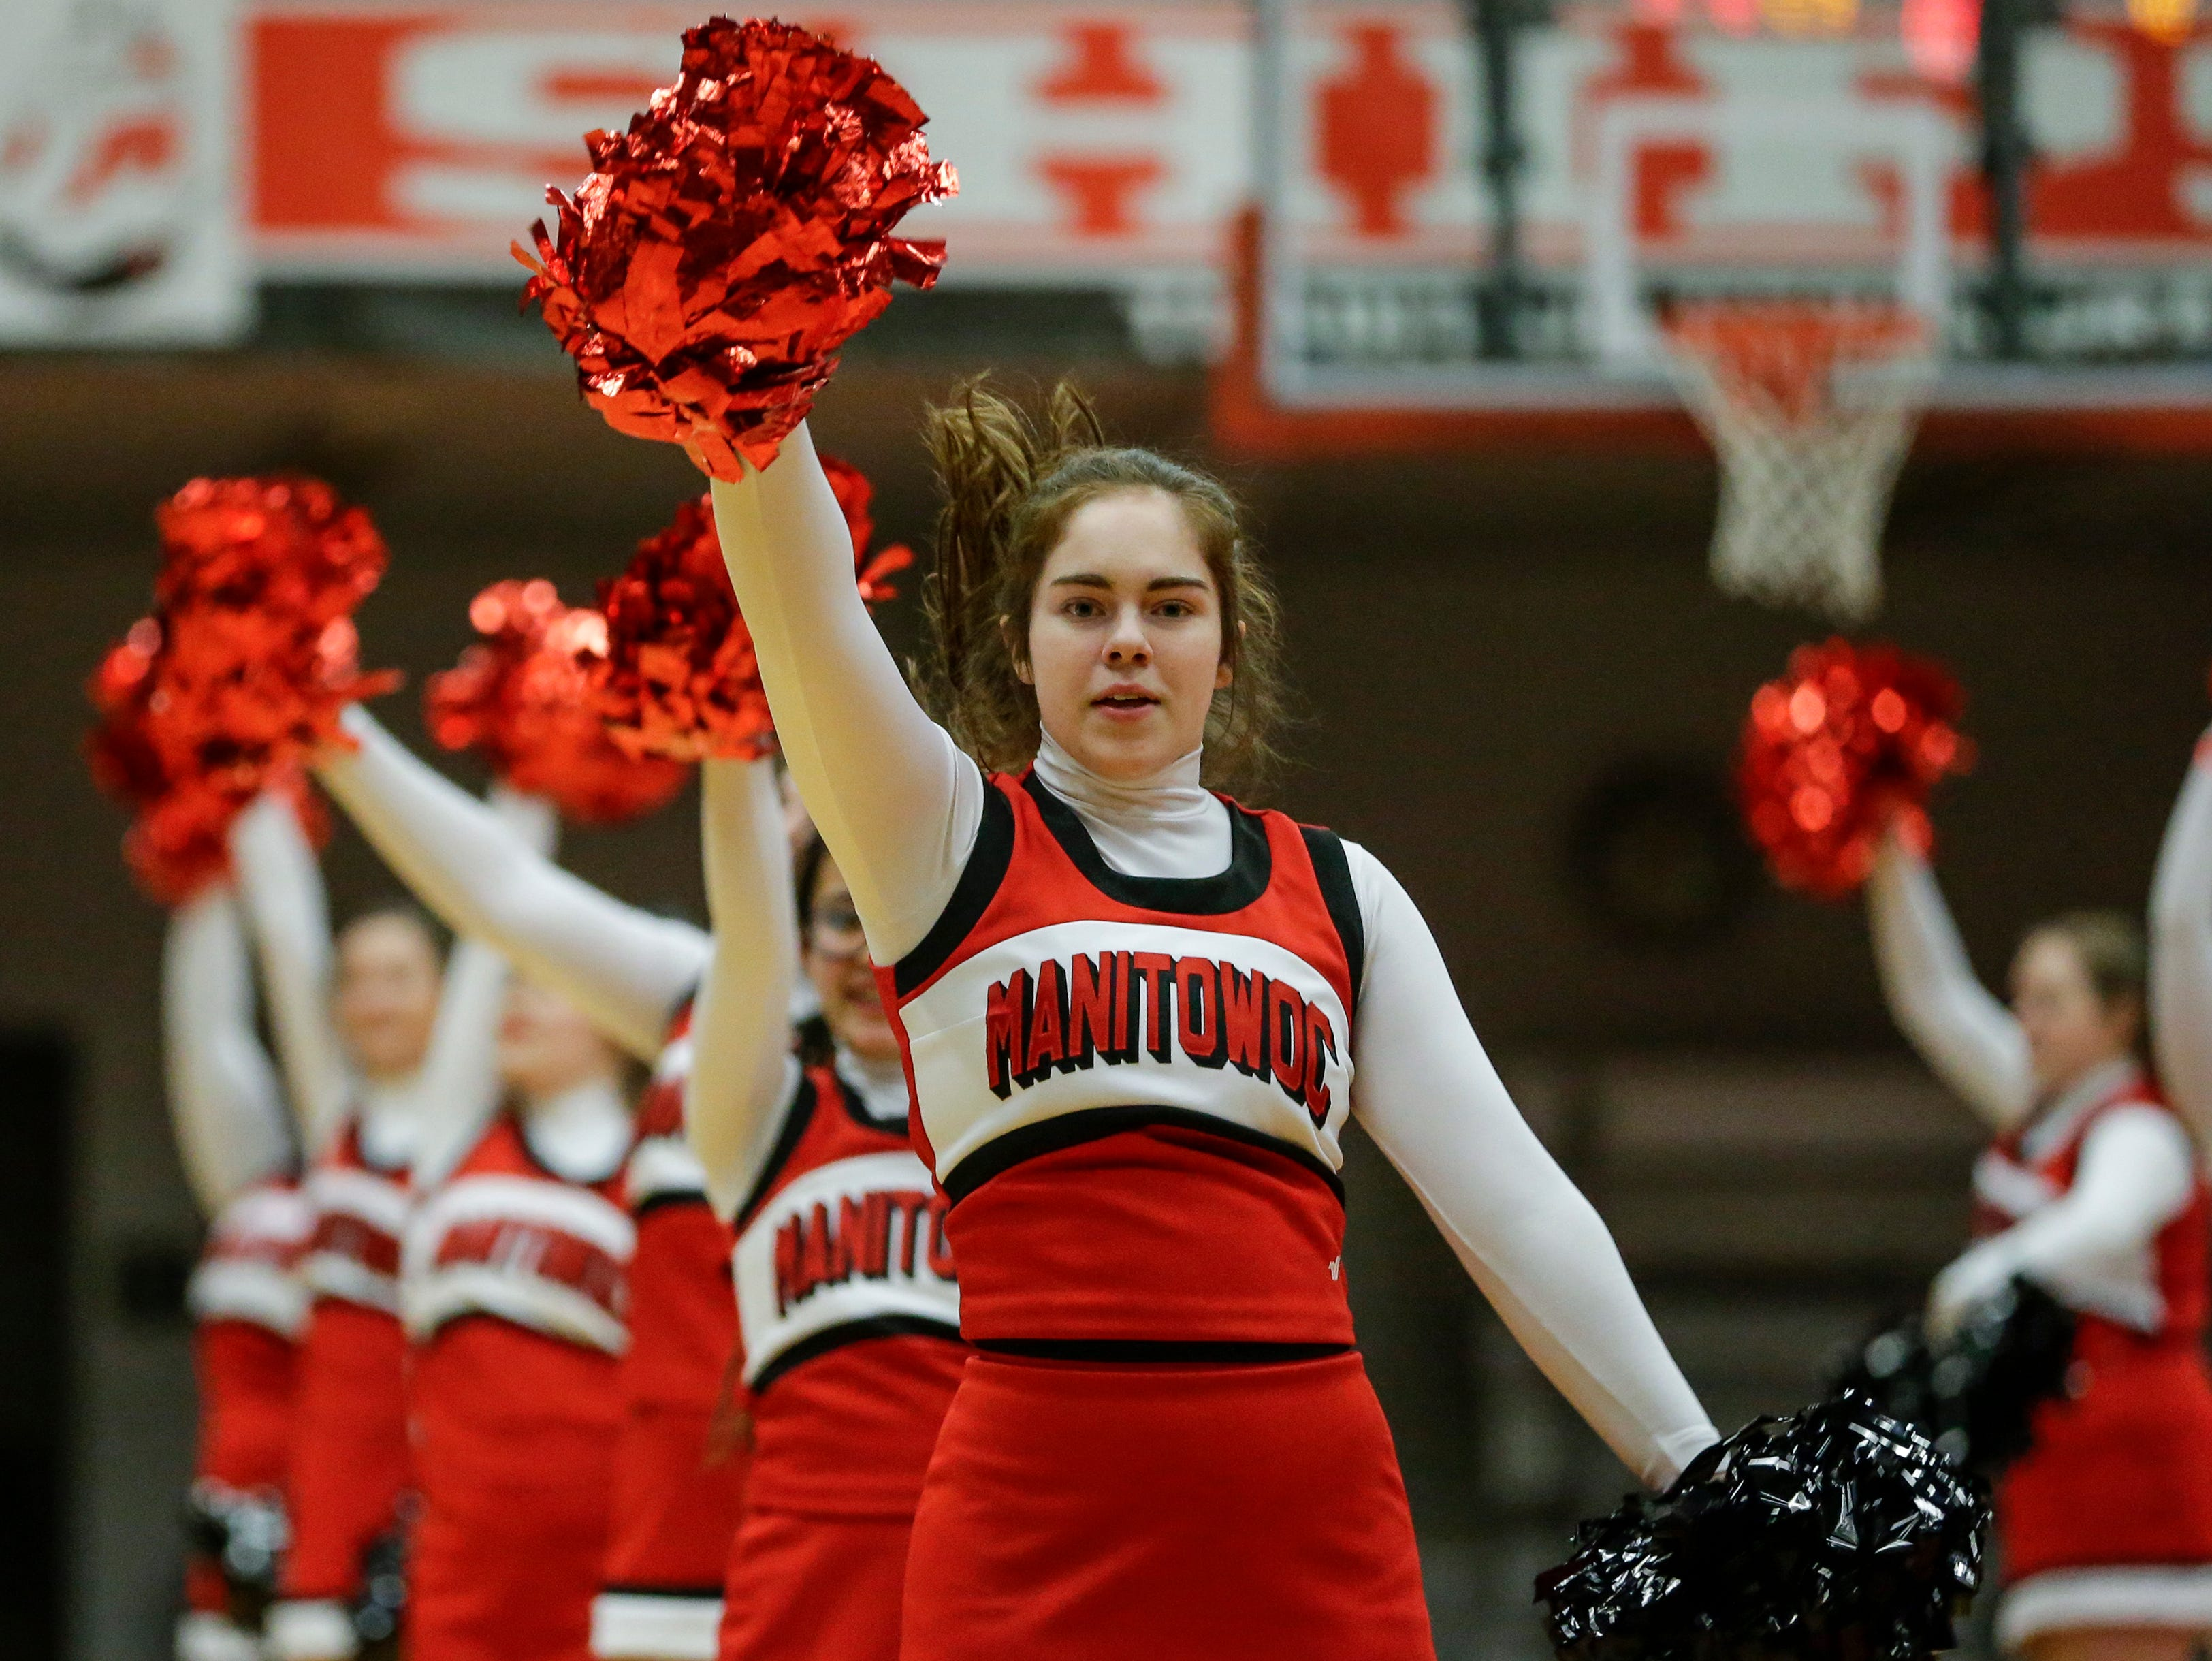 Manitowoc Lincoln's cheer team performs at halftime at Manitowoc Lincoln High School Friday, December 14, 2018, in Manitowoc, Wis. Joshua Clark/USA TODAY NETWORK-Wisconsin